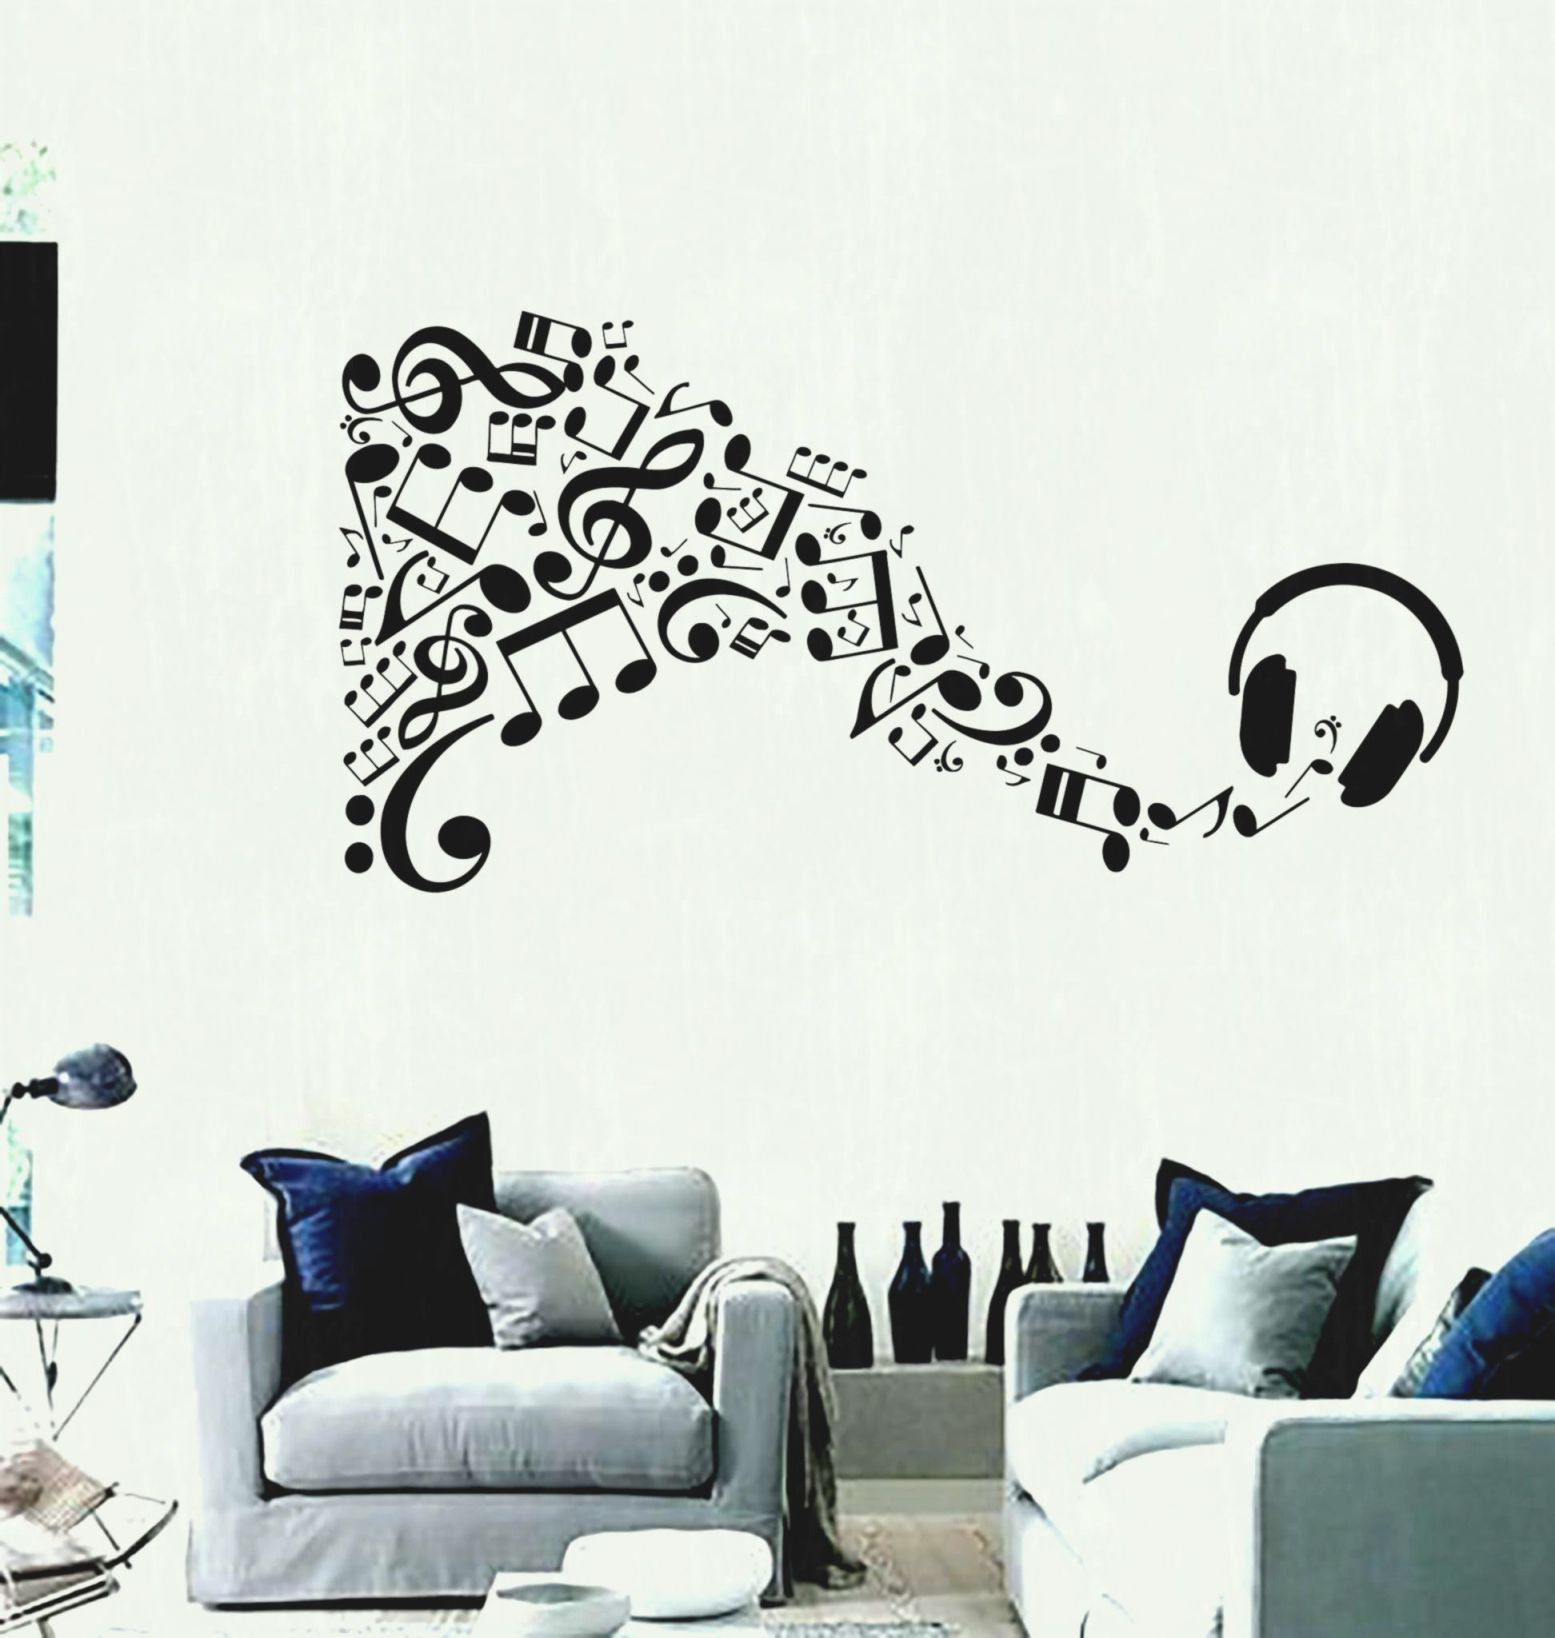 Living Room Awesome Master Bedroom Wall Decor Ideas regarding Master Bedroom Wall Decor Ideas